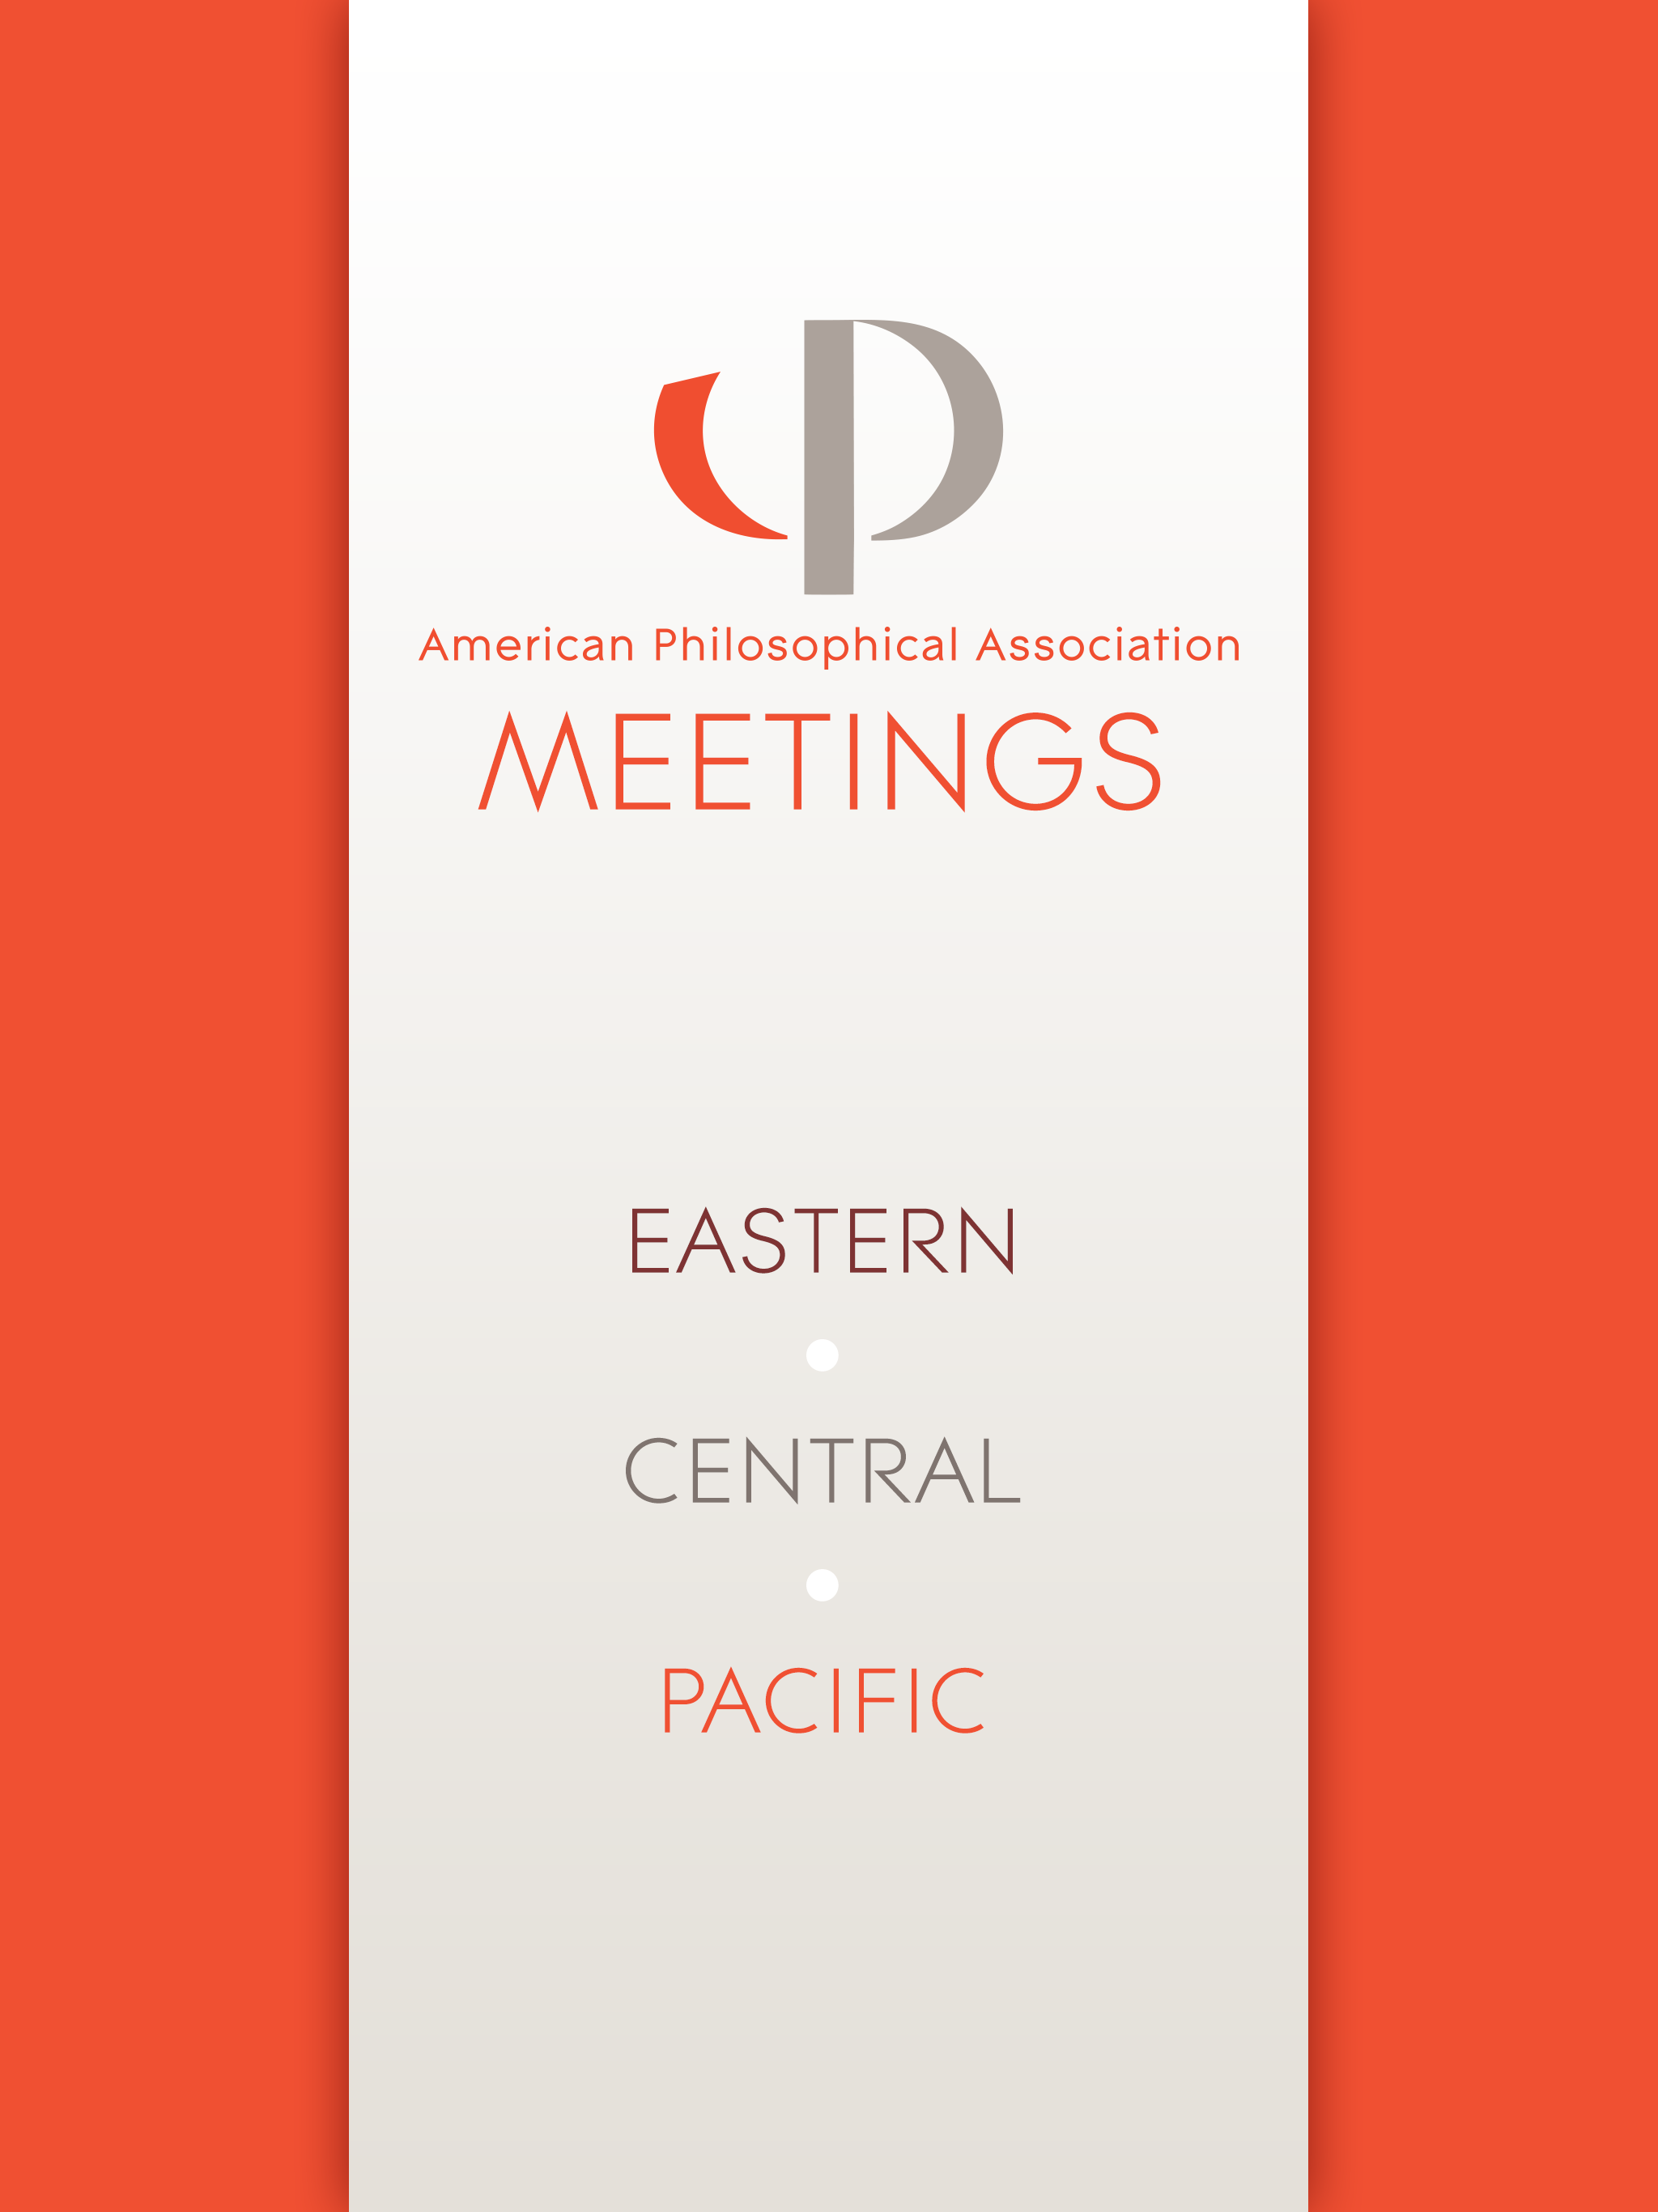 Apa Philosophy Meetings Mobile Guides For Scheduling Maps And More